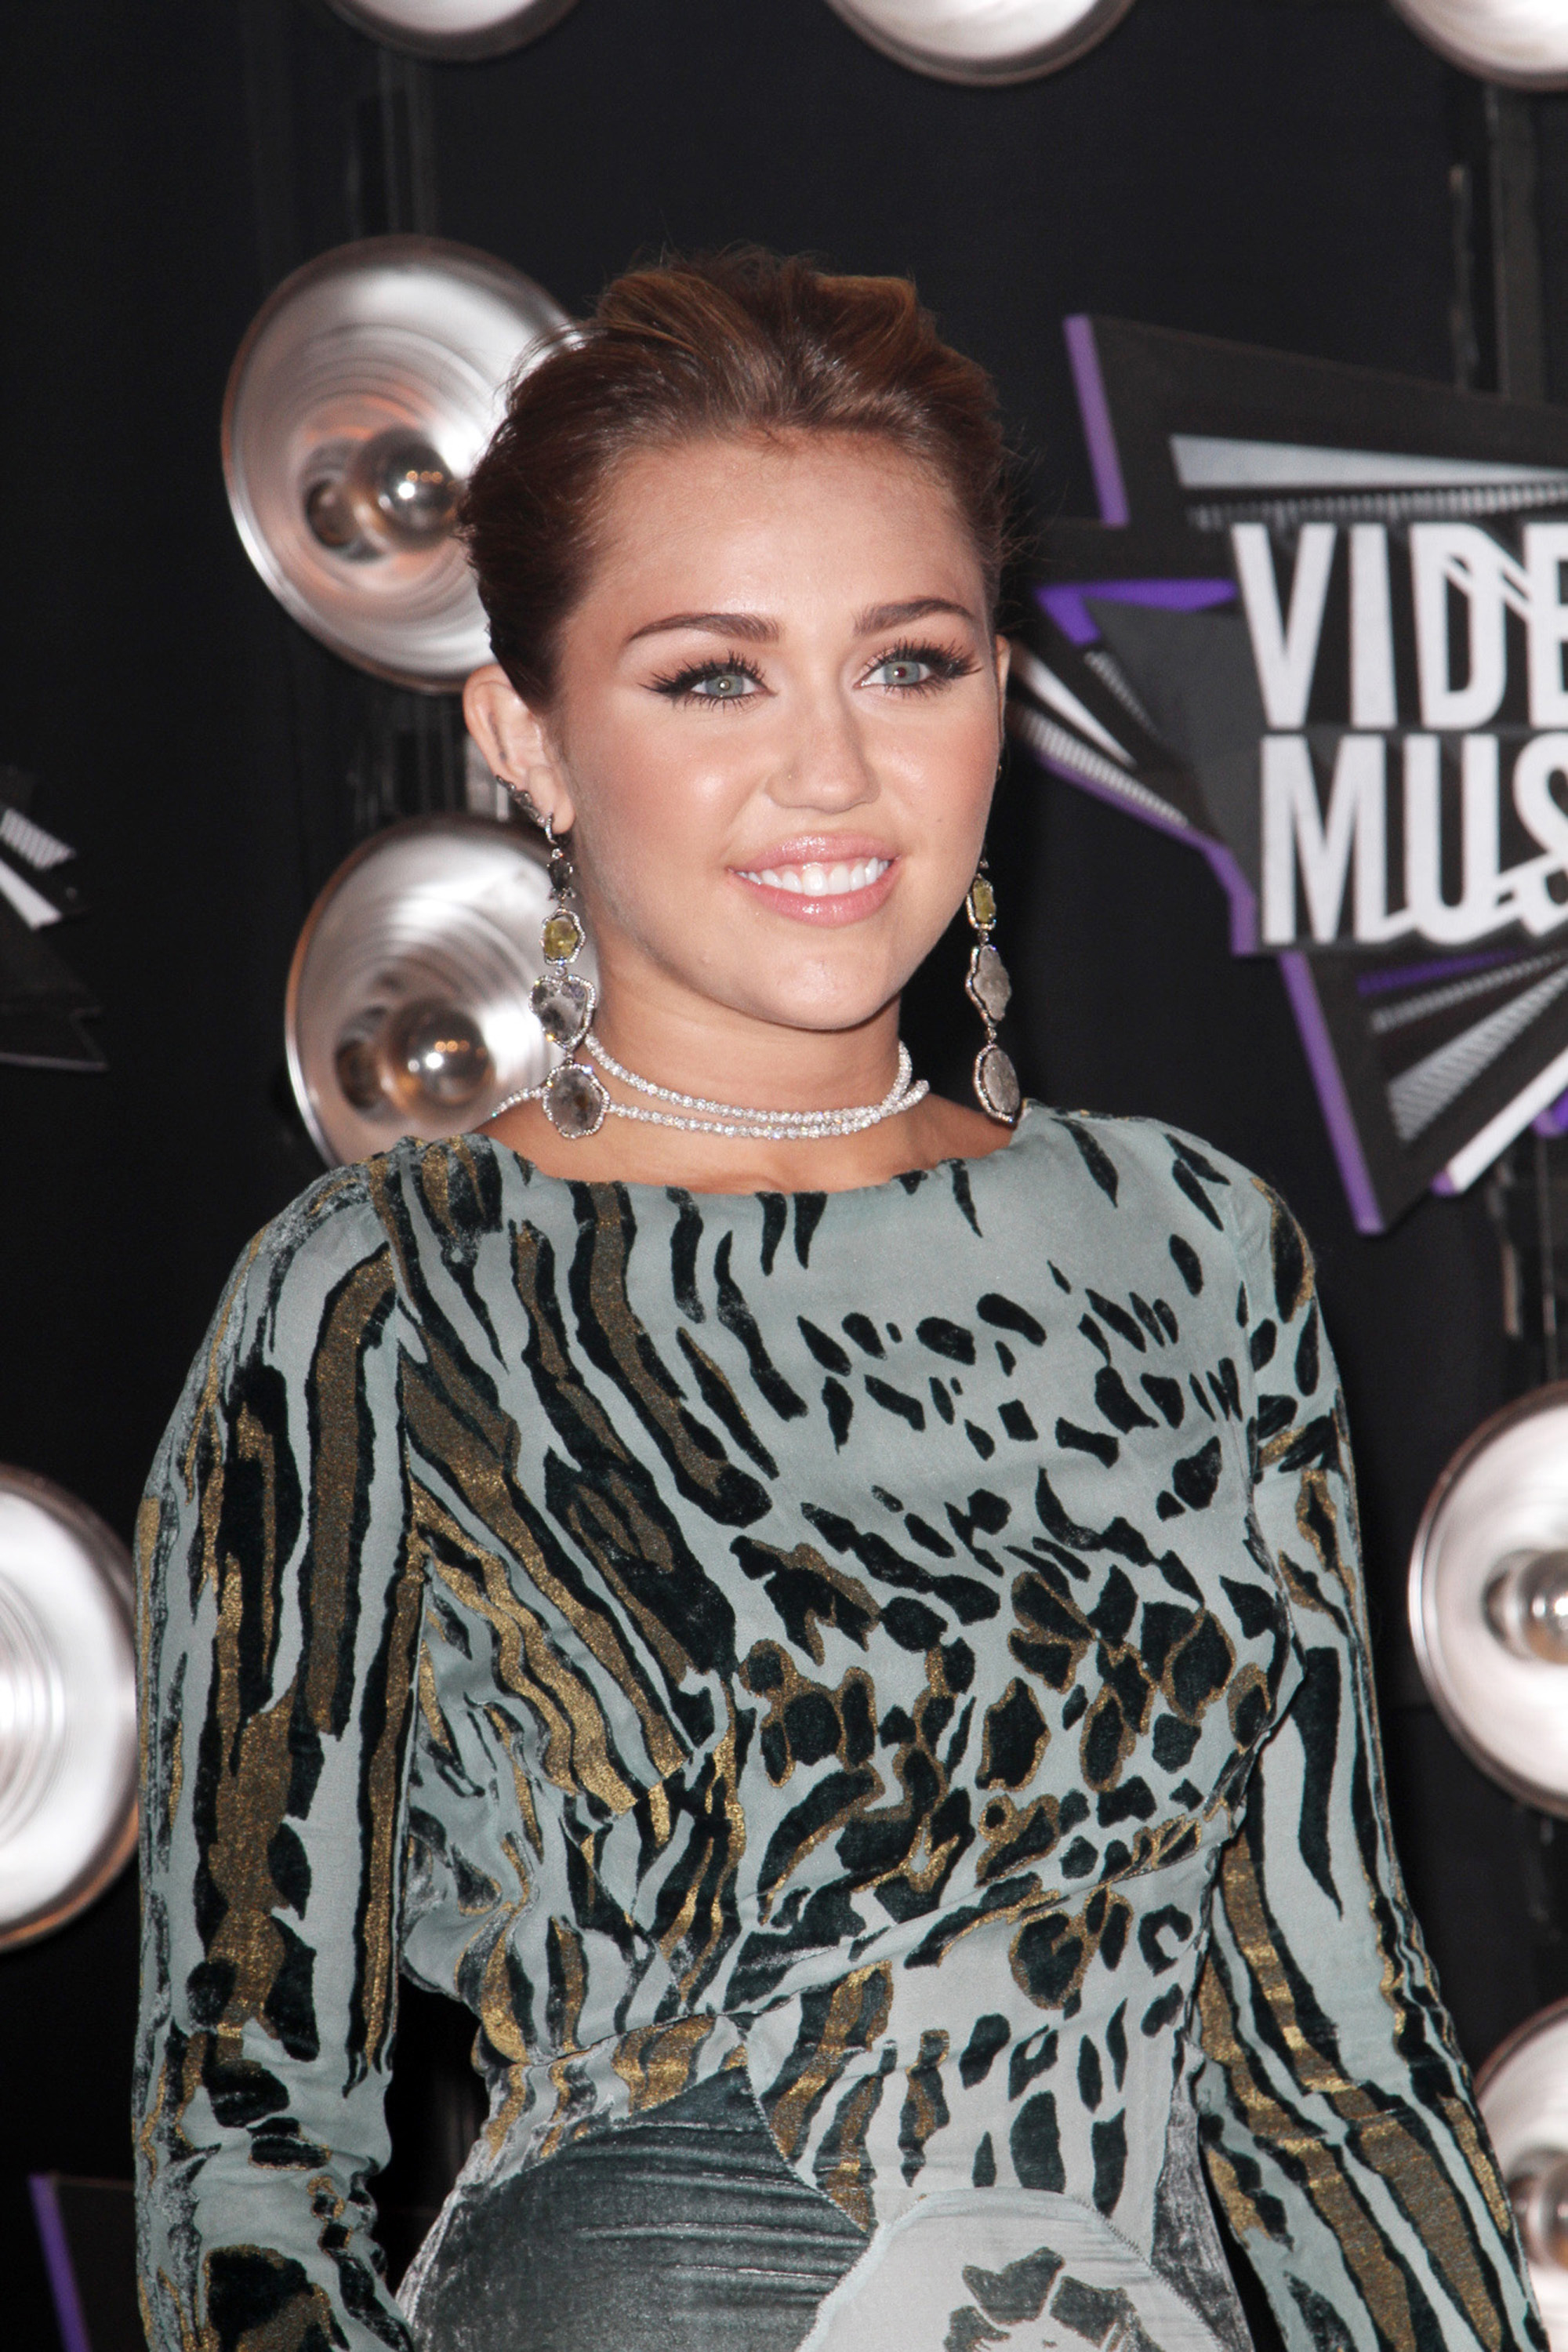 Miley Cyrus VMA Hairstyle